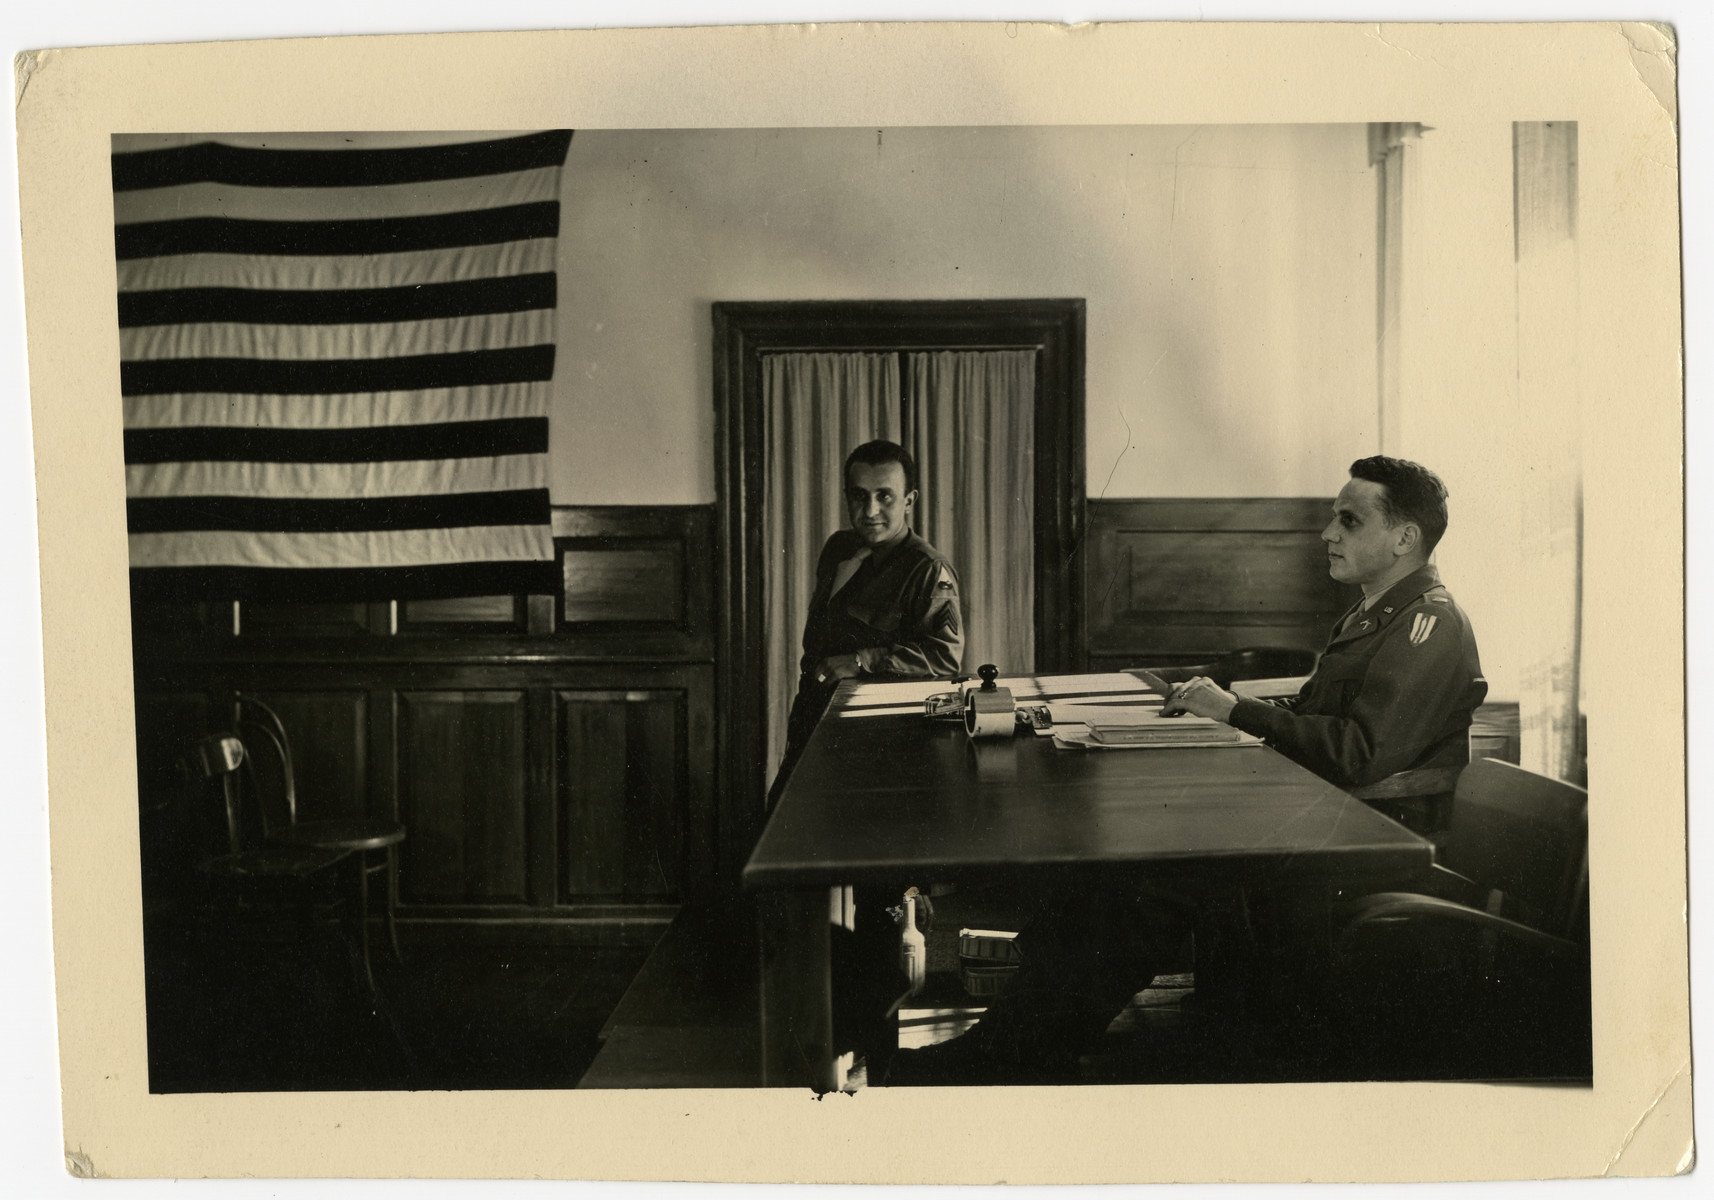 Jacob Postman, a Viennese Jewish emigre, serves as a  translator for the U.S. Army in an unidentified war crimes trial.    Jacob Postman is standing and Lt. Lizer is sitting at the desk.